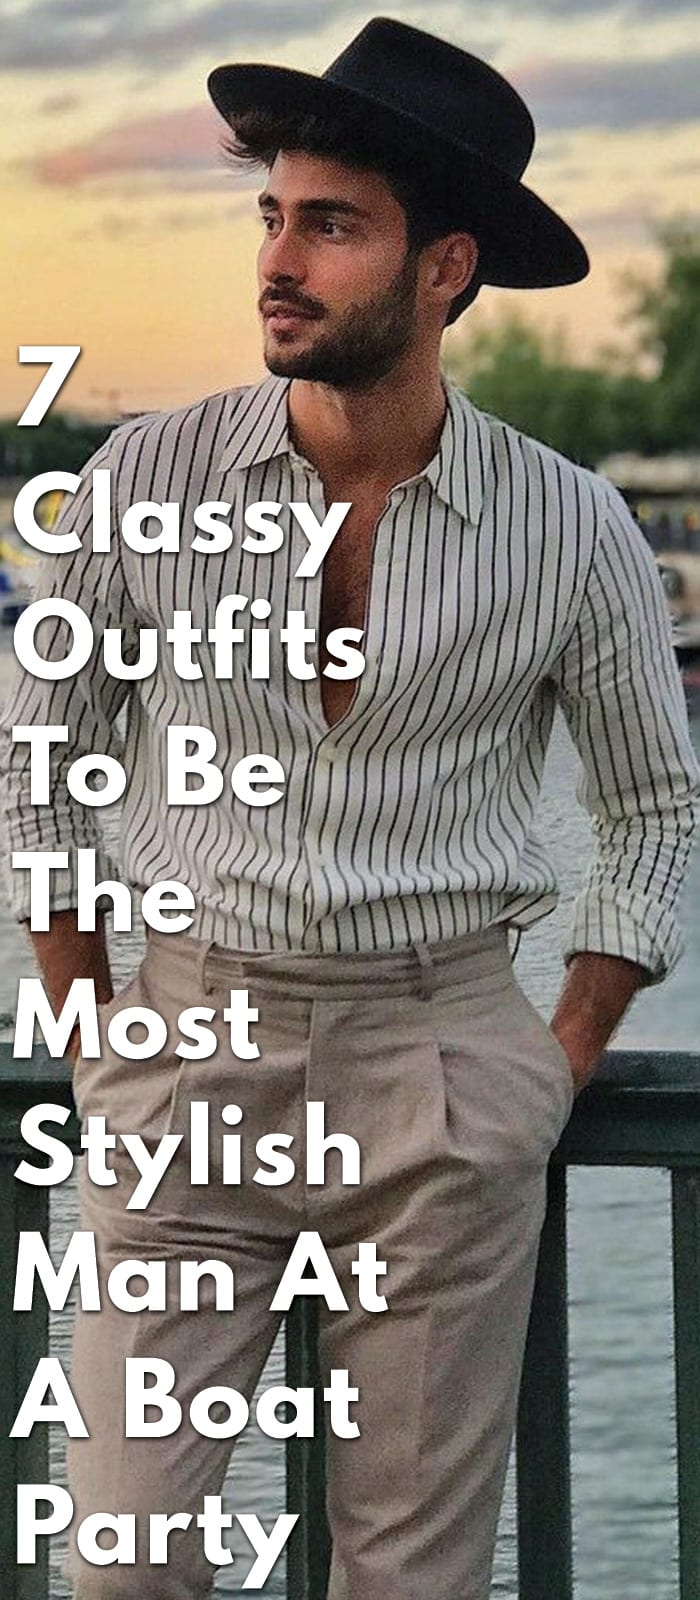 7-Classy-Outfits-To-Be-The-Most-Stylish-Man-At-A-Boat-Party